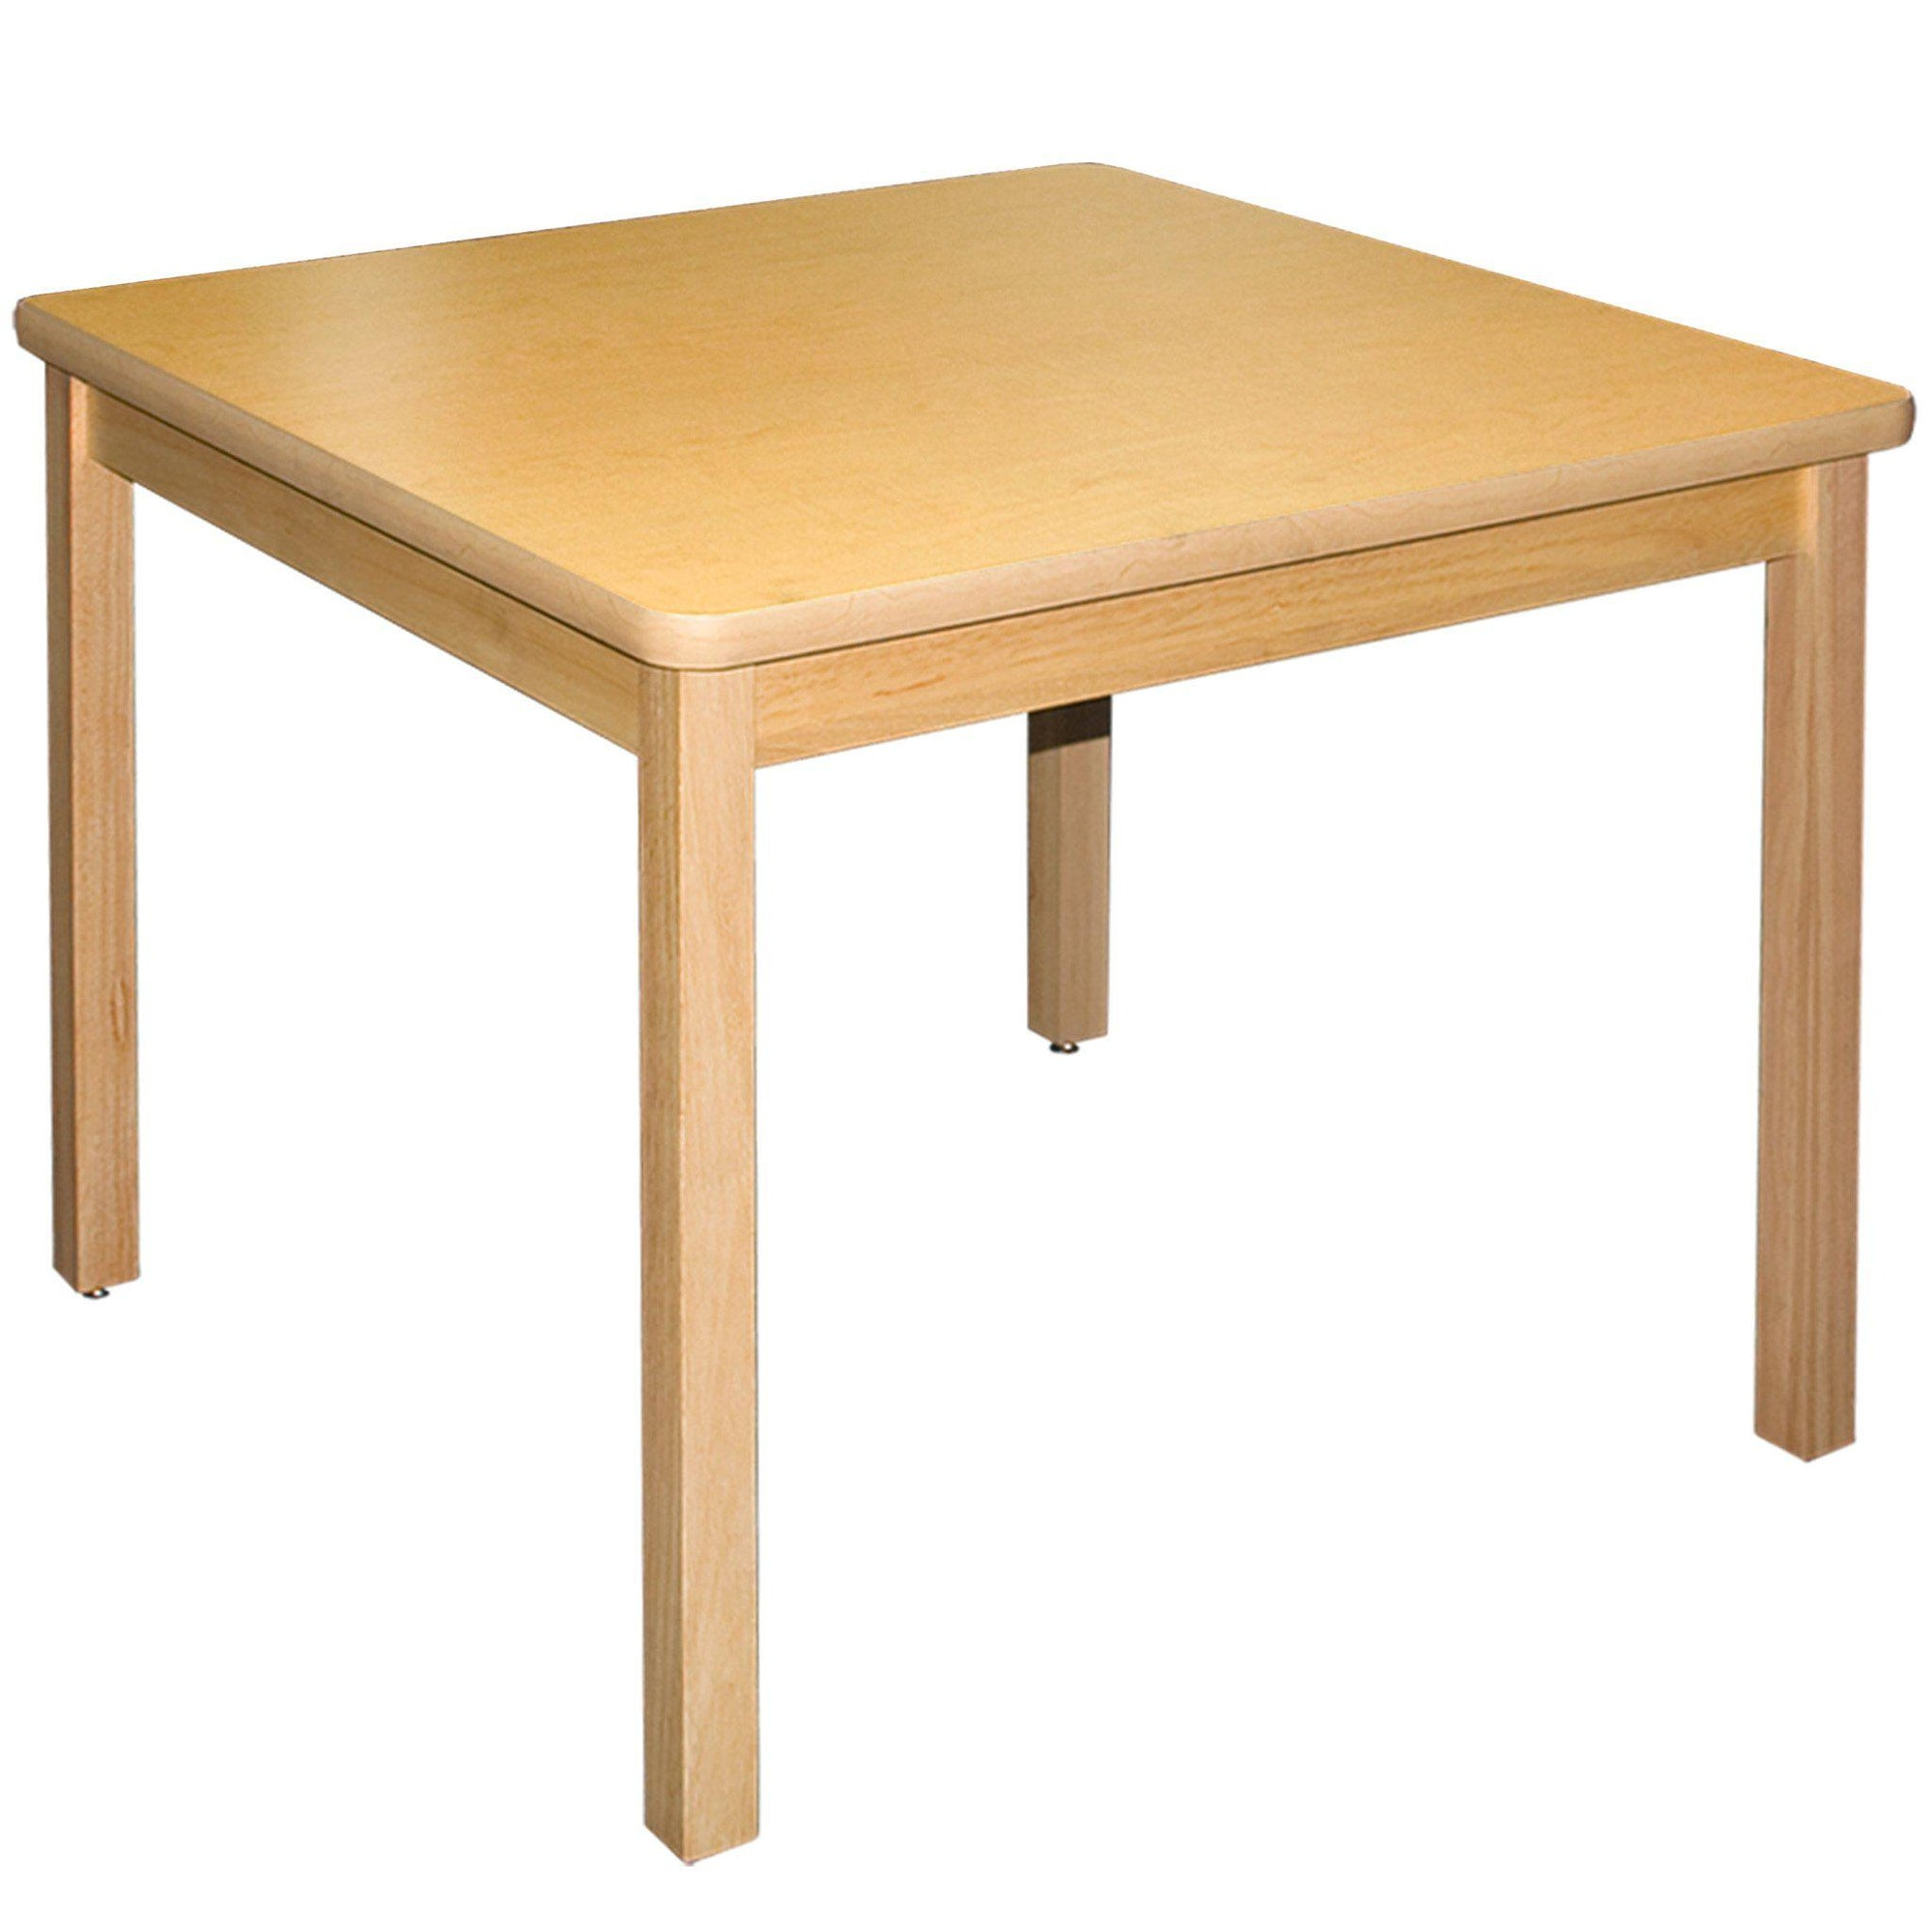 "LB Series Square Wood Library Table with High-Pressure Laminate Top, 24"" x 24"""